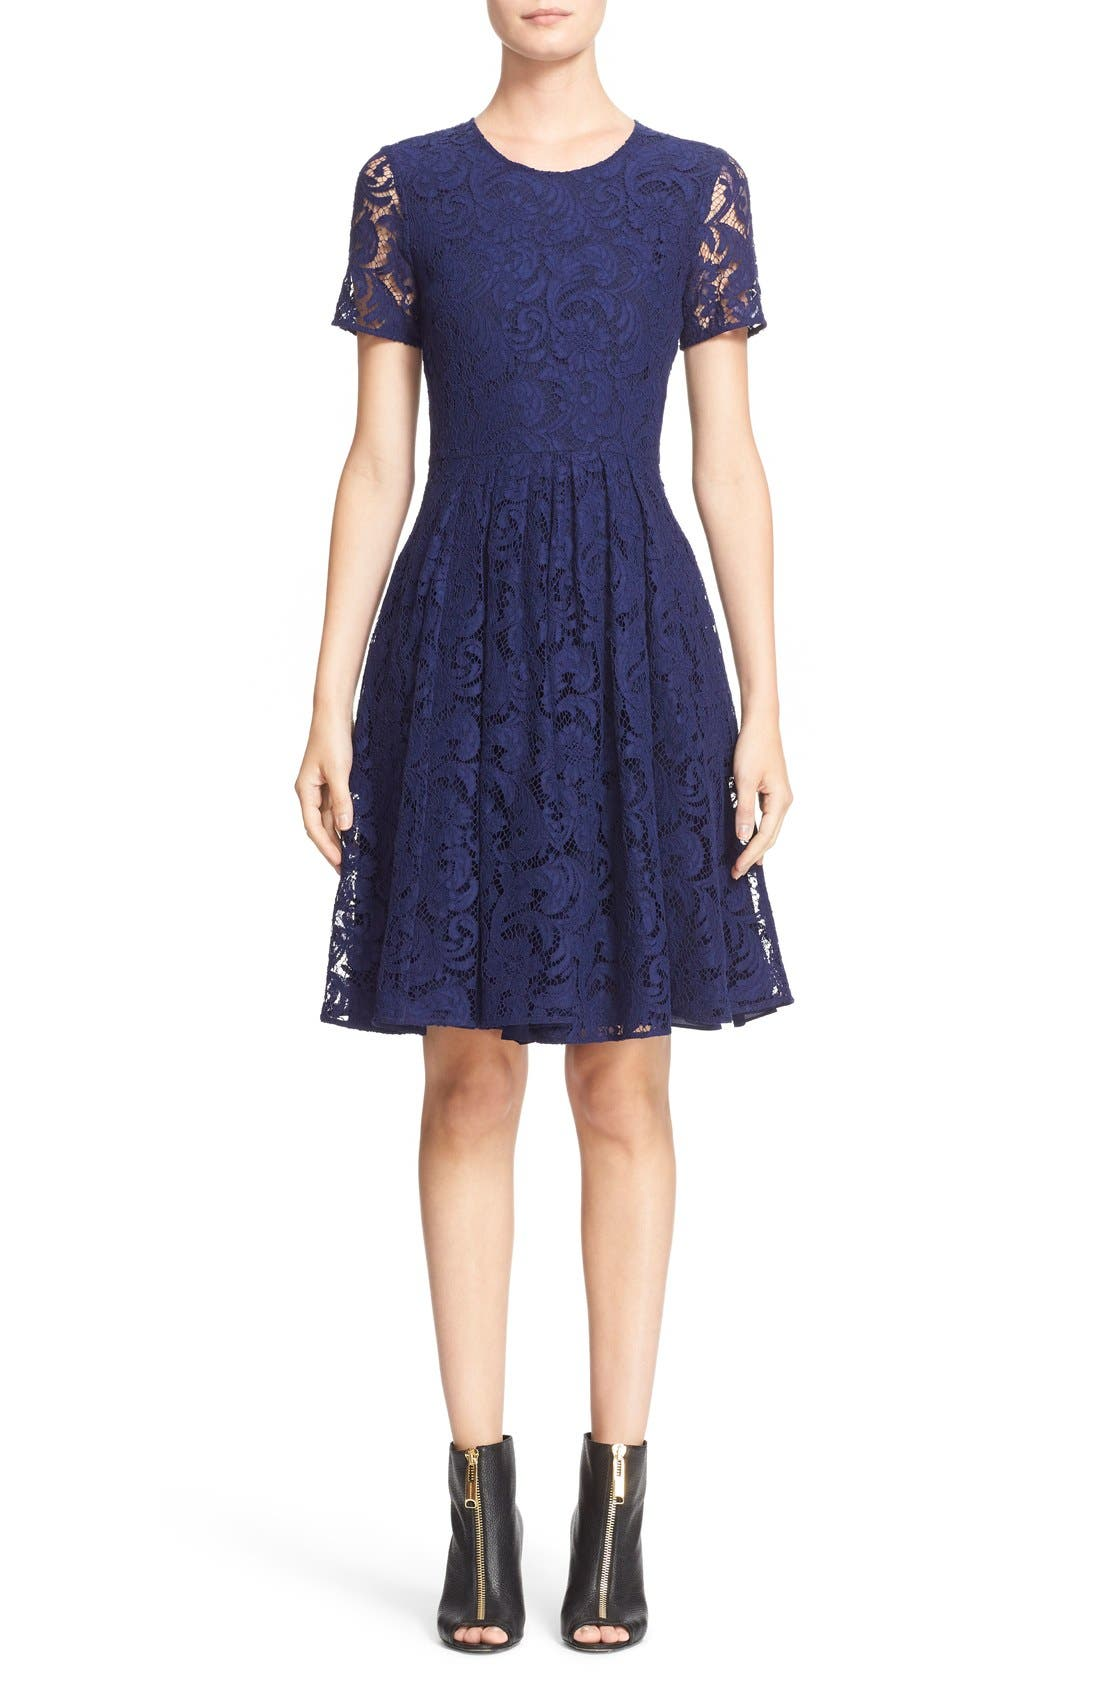 BURBERRY LONDON,                             'Alice' Short Sleeve Corded Lace Fit & Flare Dress,                             Main thumbnail 1, color,                             495